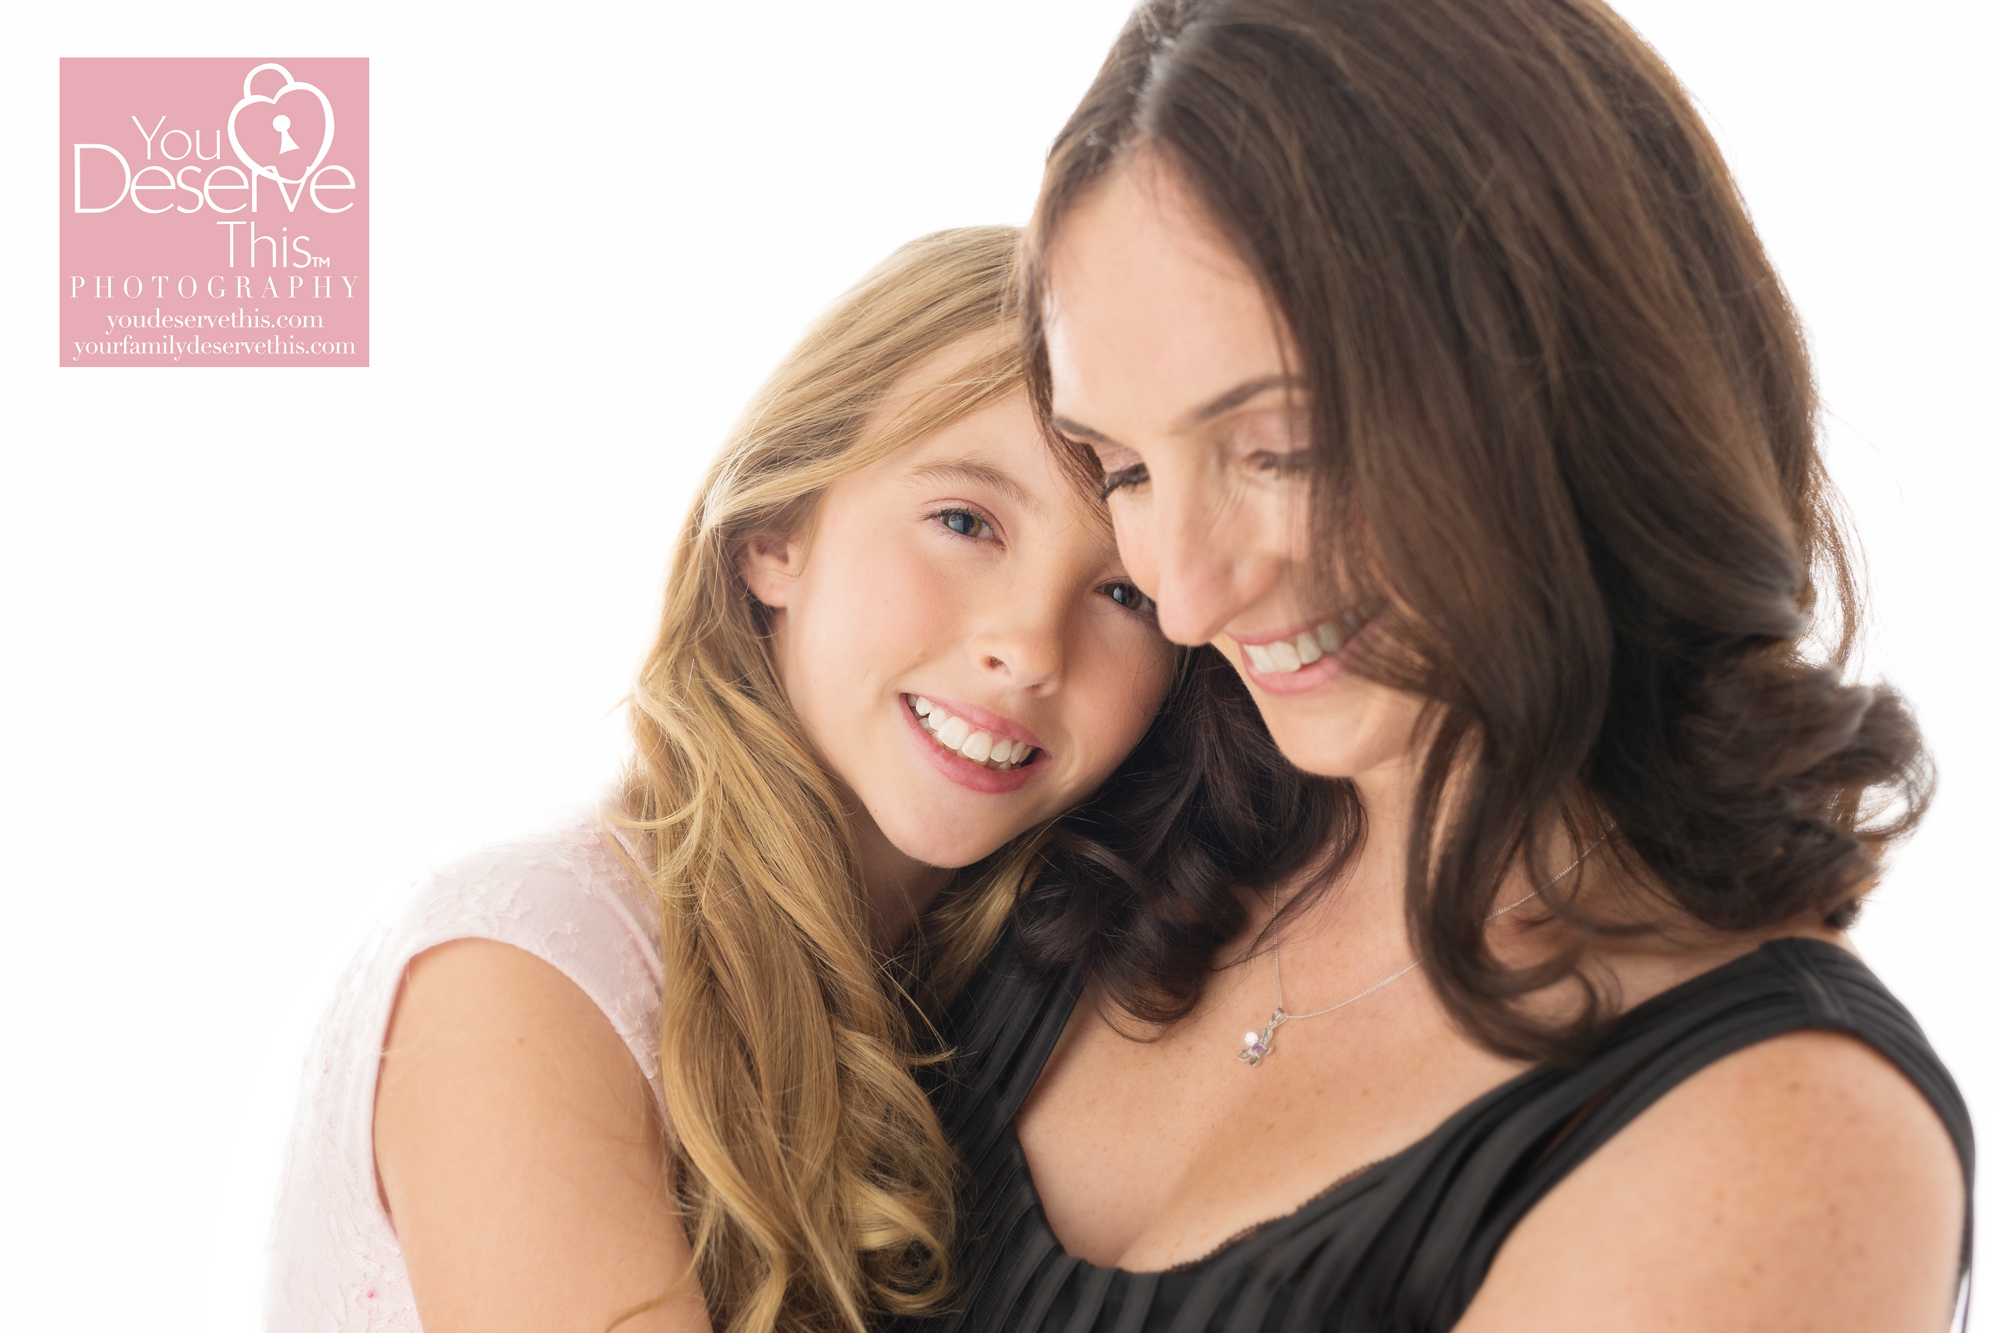 This is one of our favourite mum and daughter portraits from their photoshoot at our photography studio nr Reading, Berkshire  youdeservethis.com